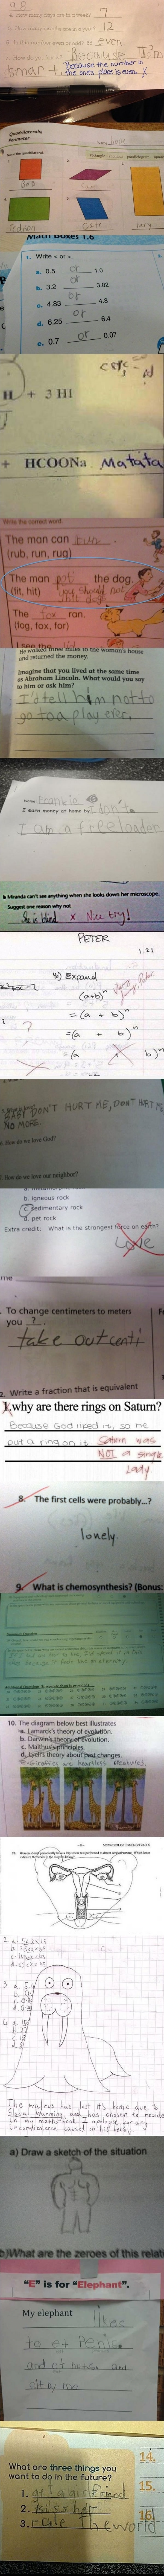 Smarta** exam answers